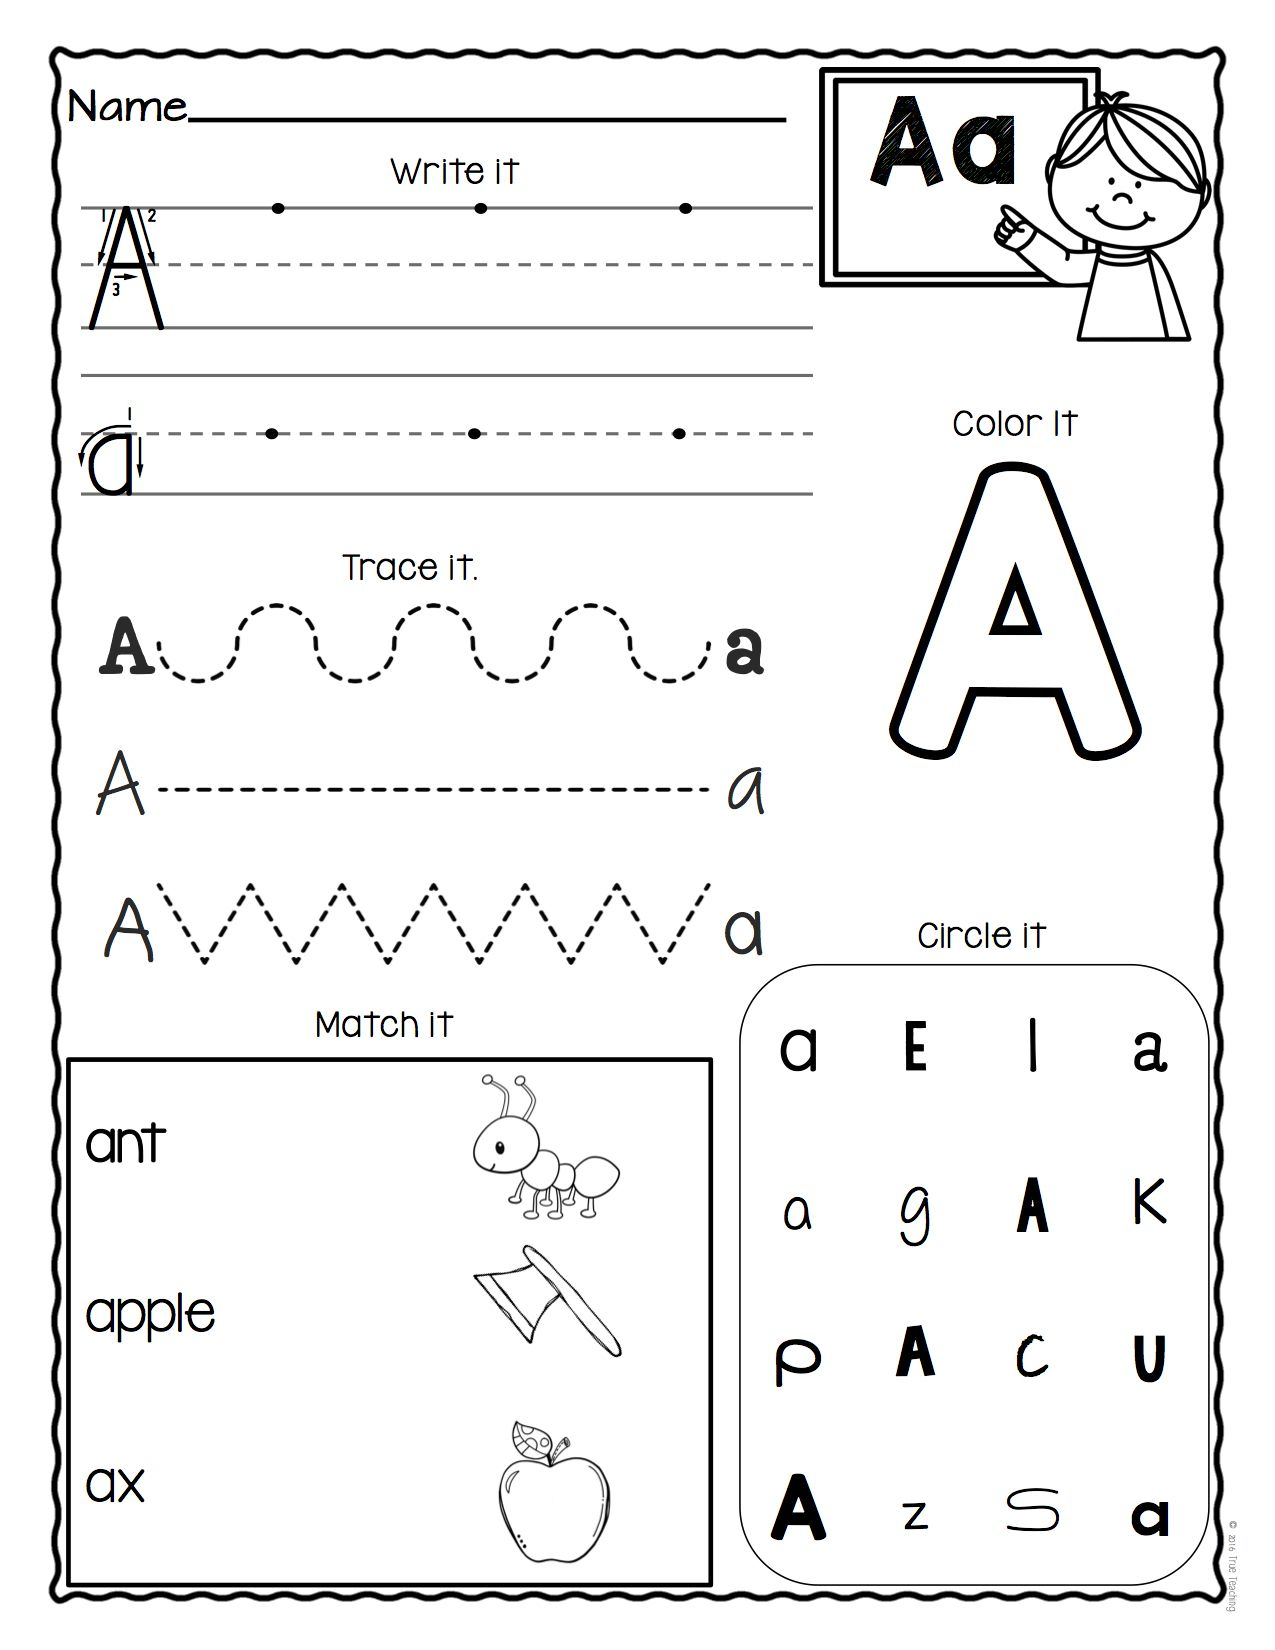 A-Z Letter Worksheets (Set 3) | Preschool Worksheets within Alphabet Worksheets Az